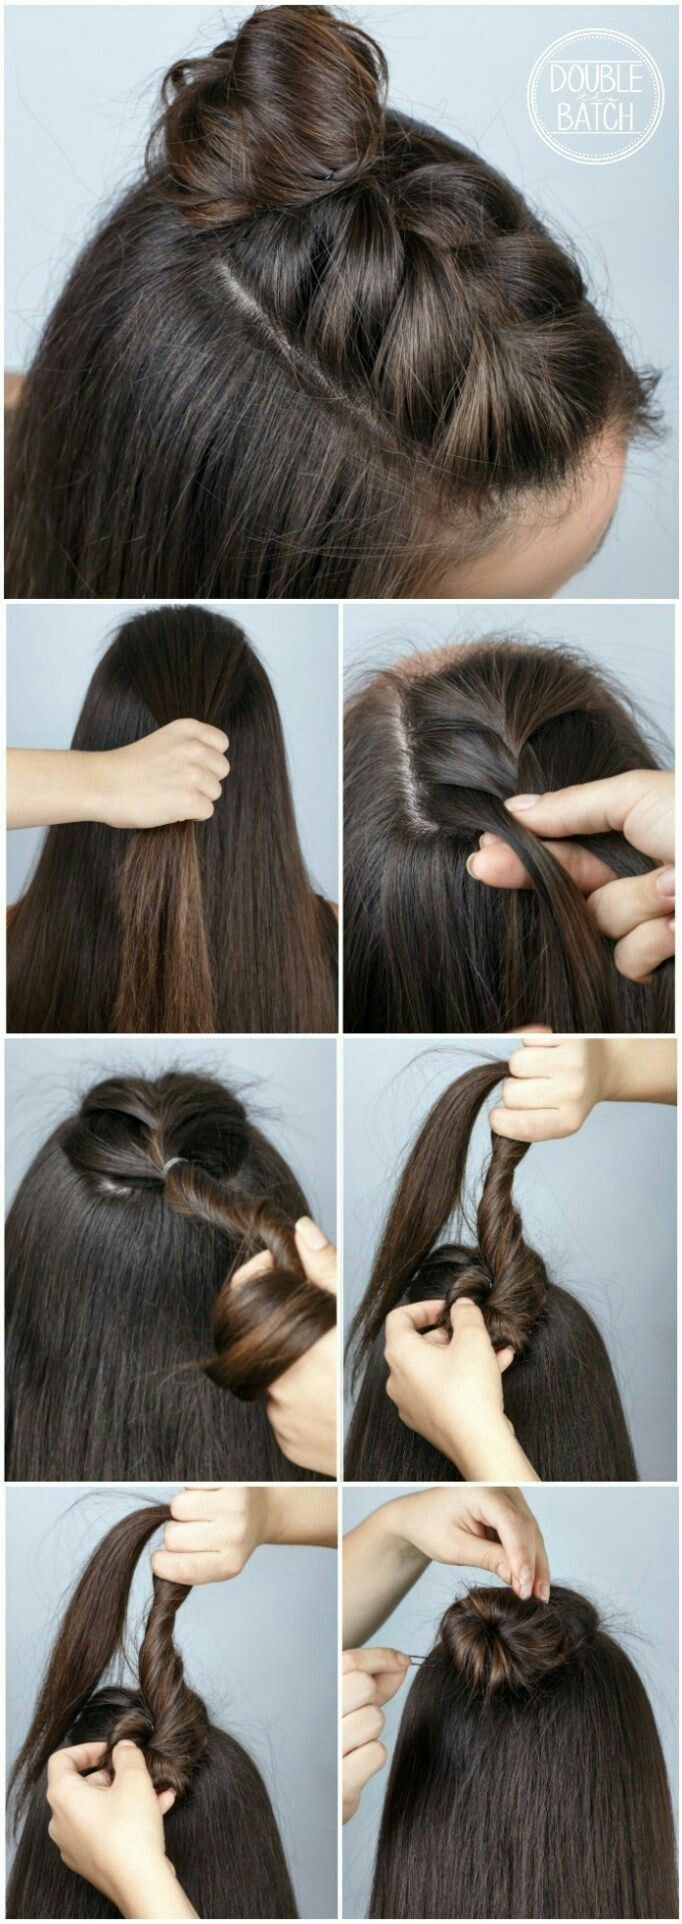 Look cool my style hair pinterest hair style makeup and hair